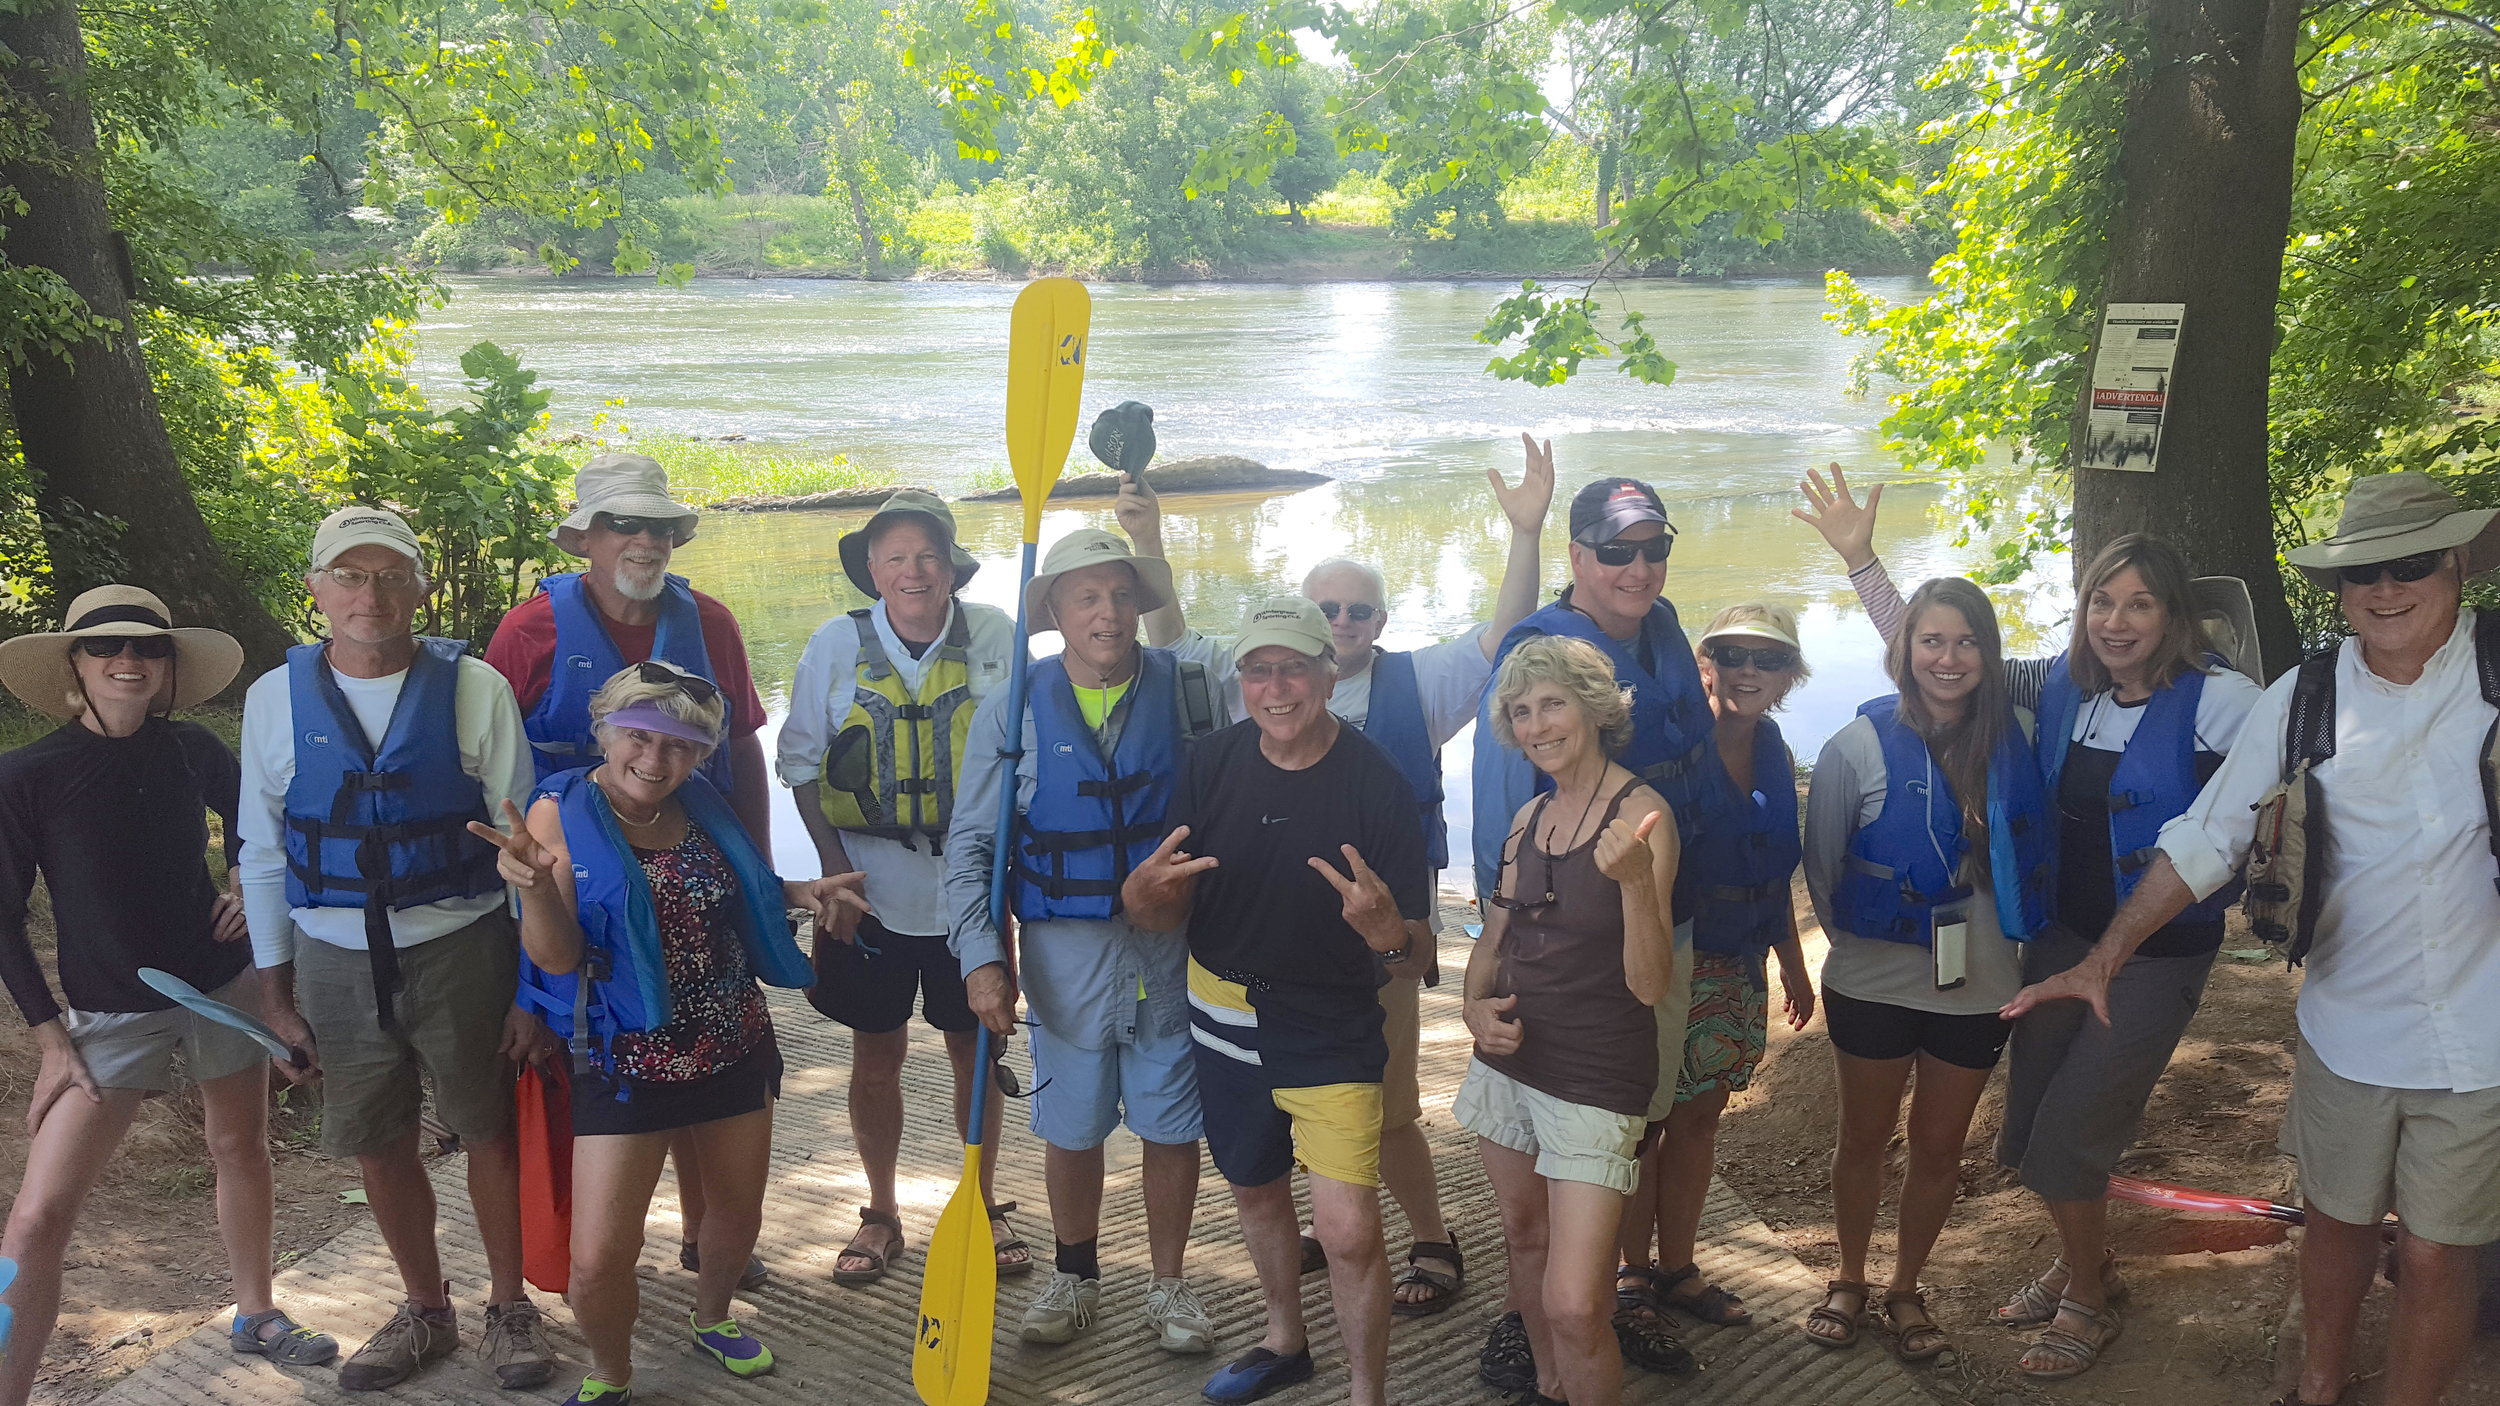 Some 14 people made the trip on June 14th.    WSC members brought along friends and family.    Shenandoah River Outfitters    handled it all easily with first-rate gear and a fun attitude.